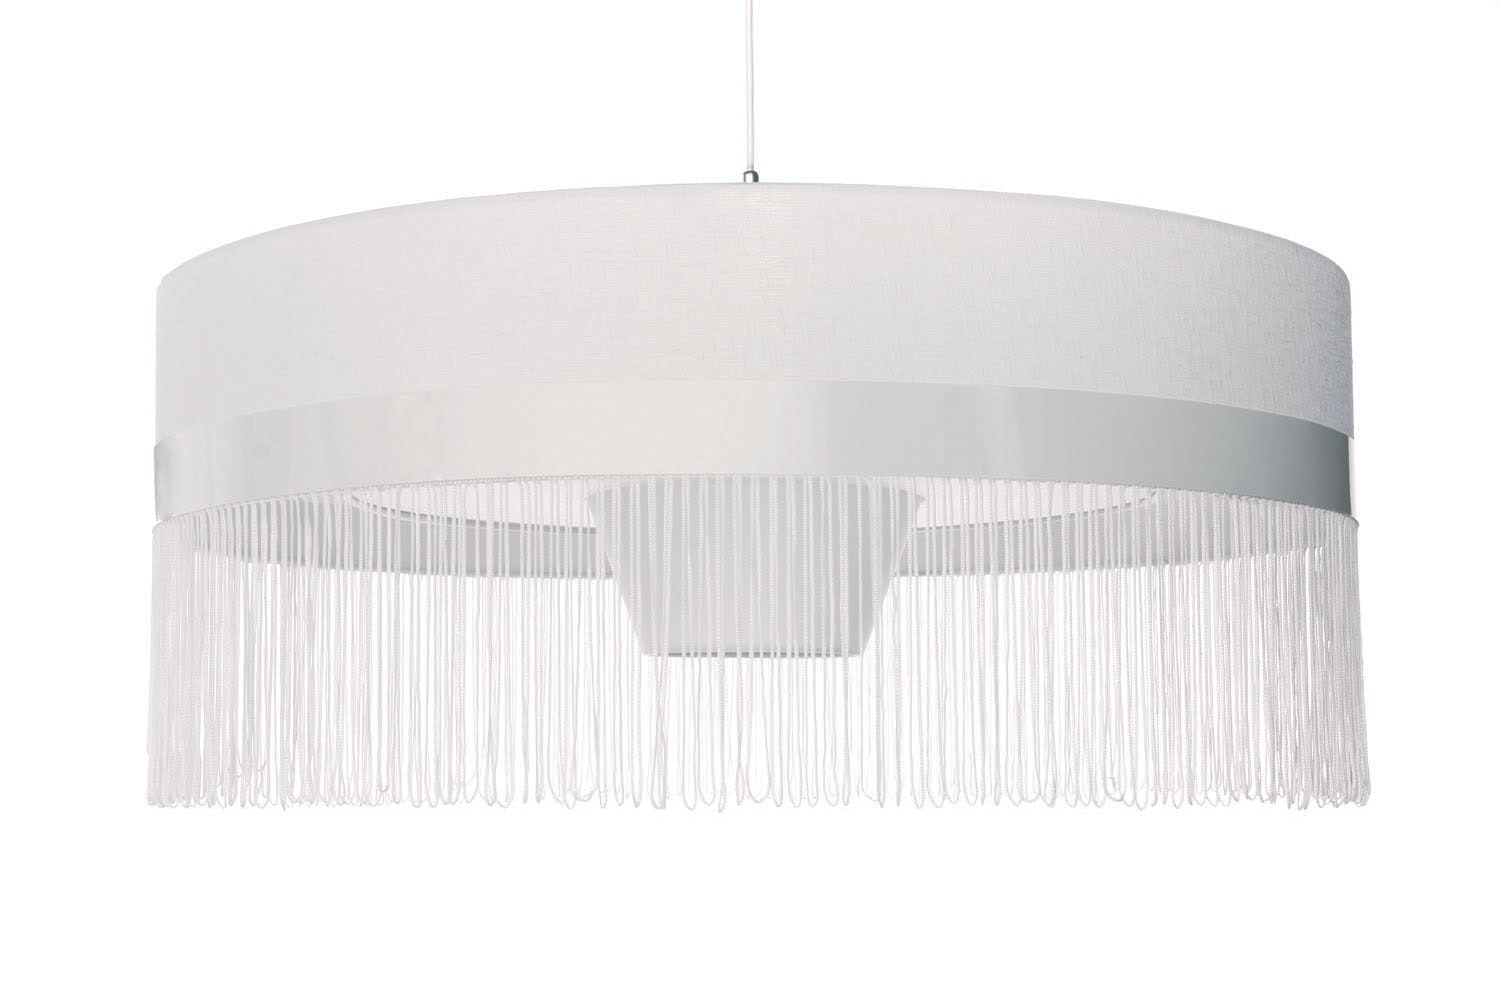 Fringe 2 Suspension Lamp by Edward van Vliet for Moooi